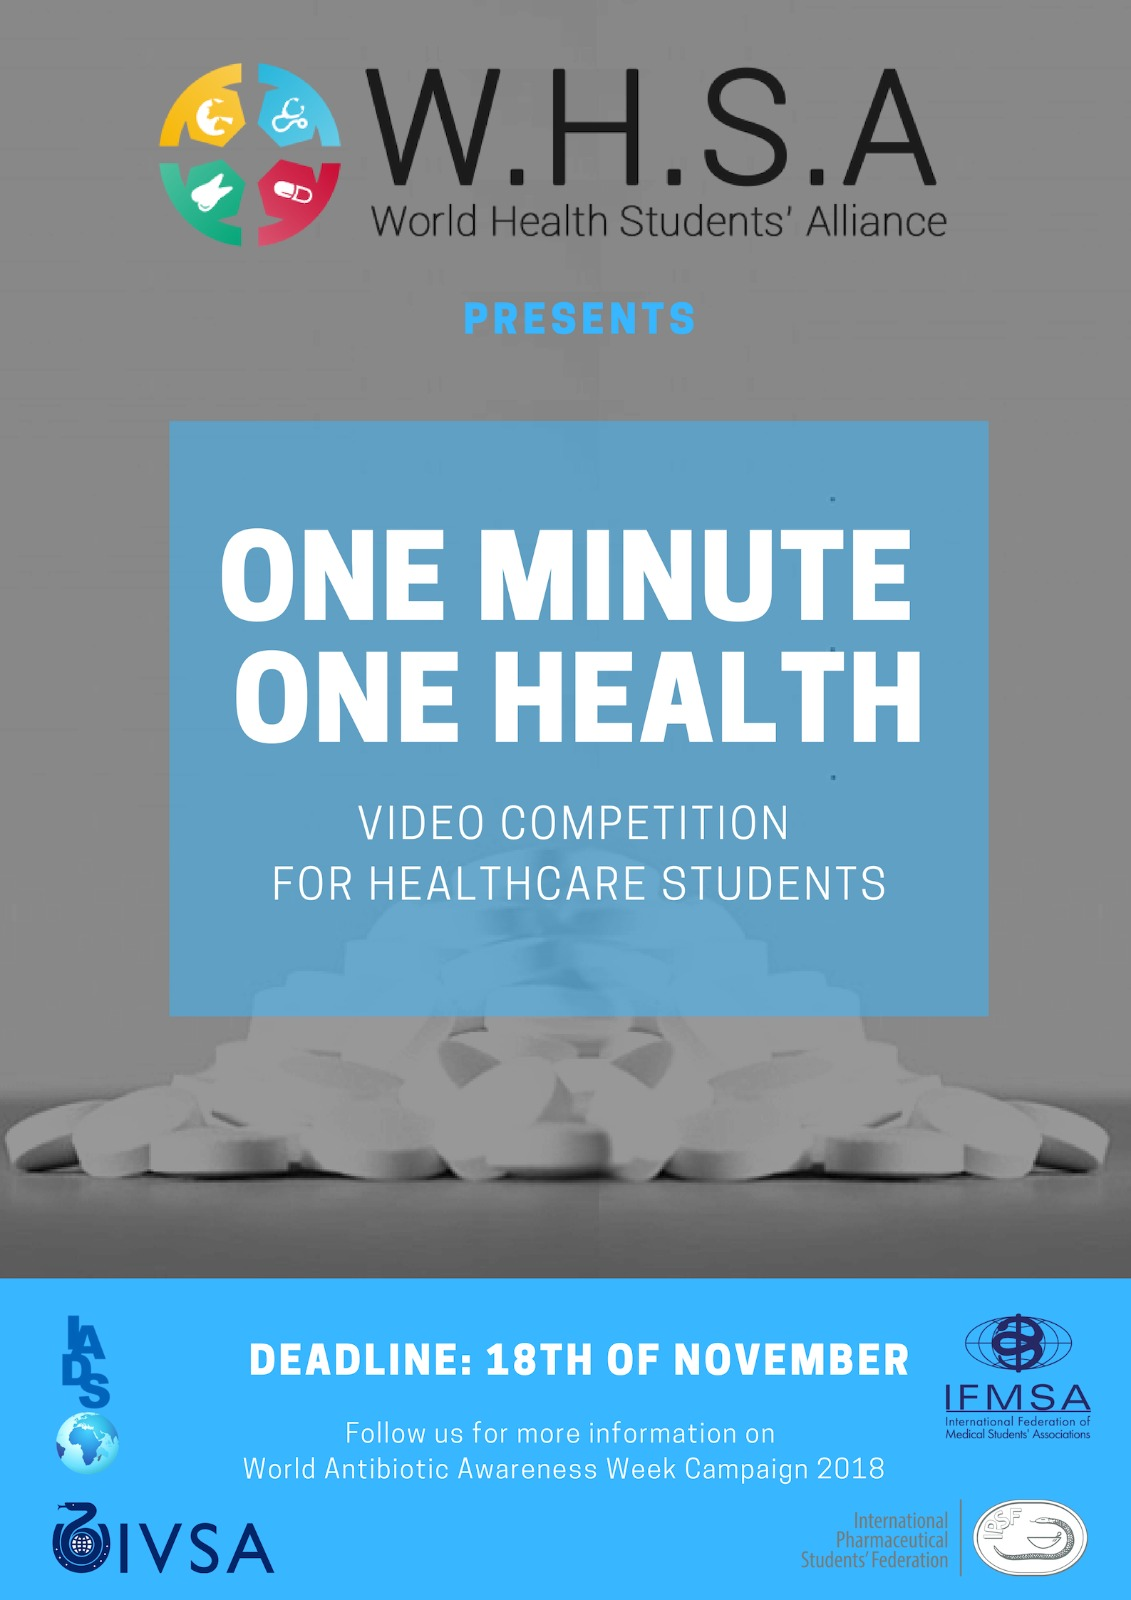 One Minute - One Health' Video Competition - International